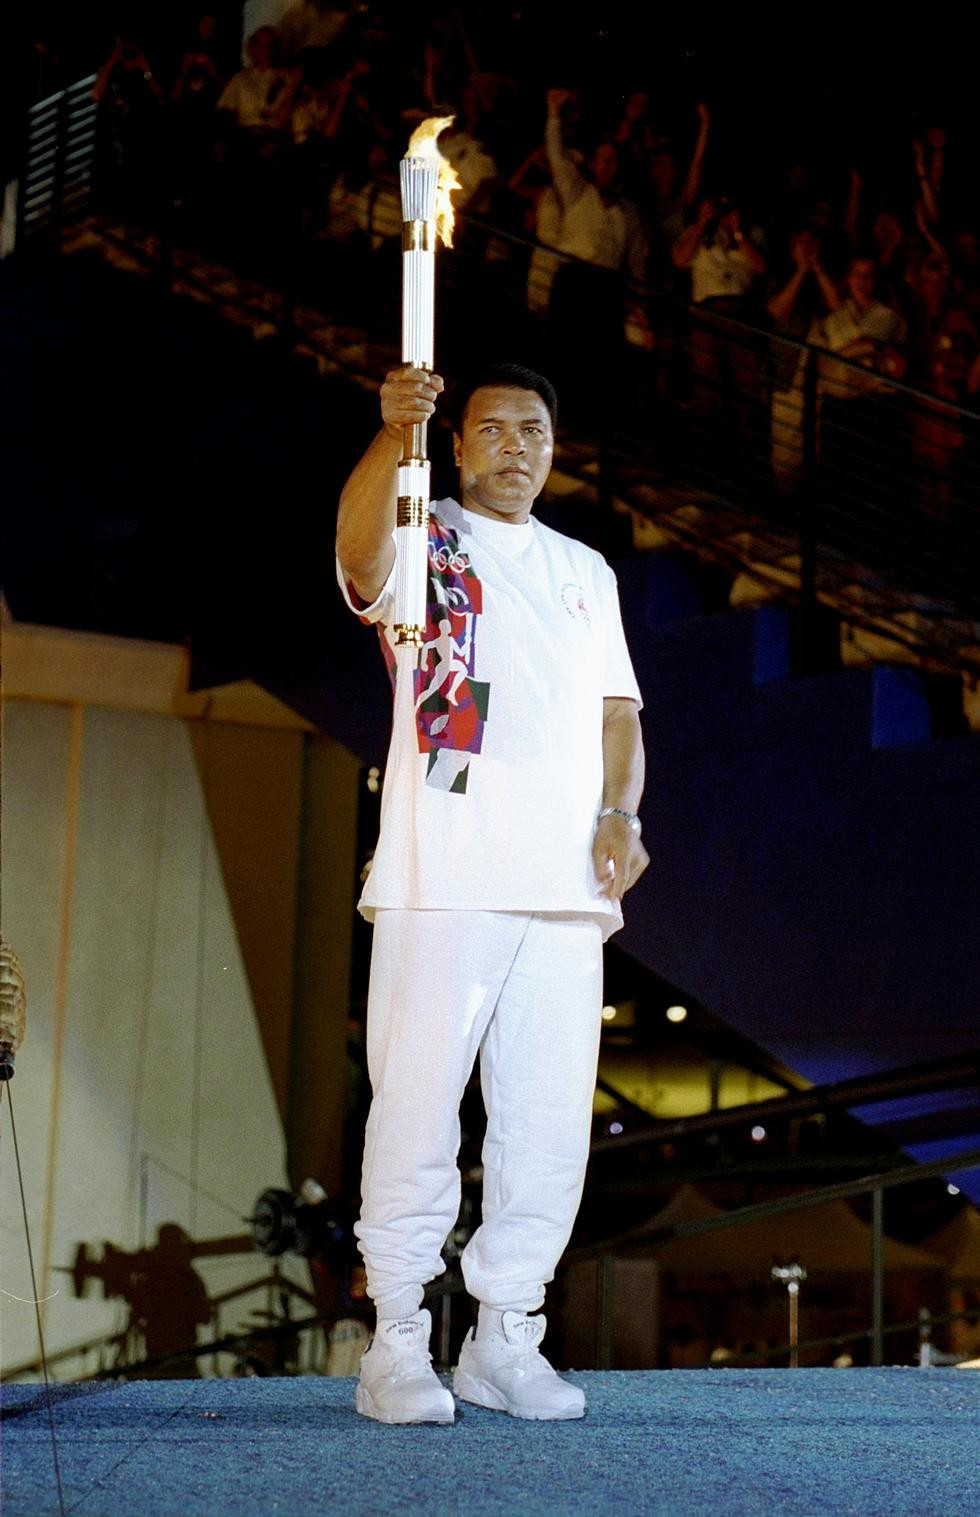 Muhammad Ali lighting the Olympic Cauldron at Atlanta 1996 remains one of the Games' most iconic moments ©Getty Images